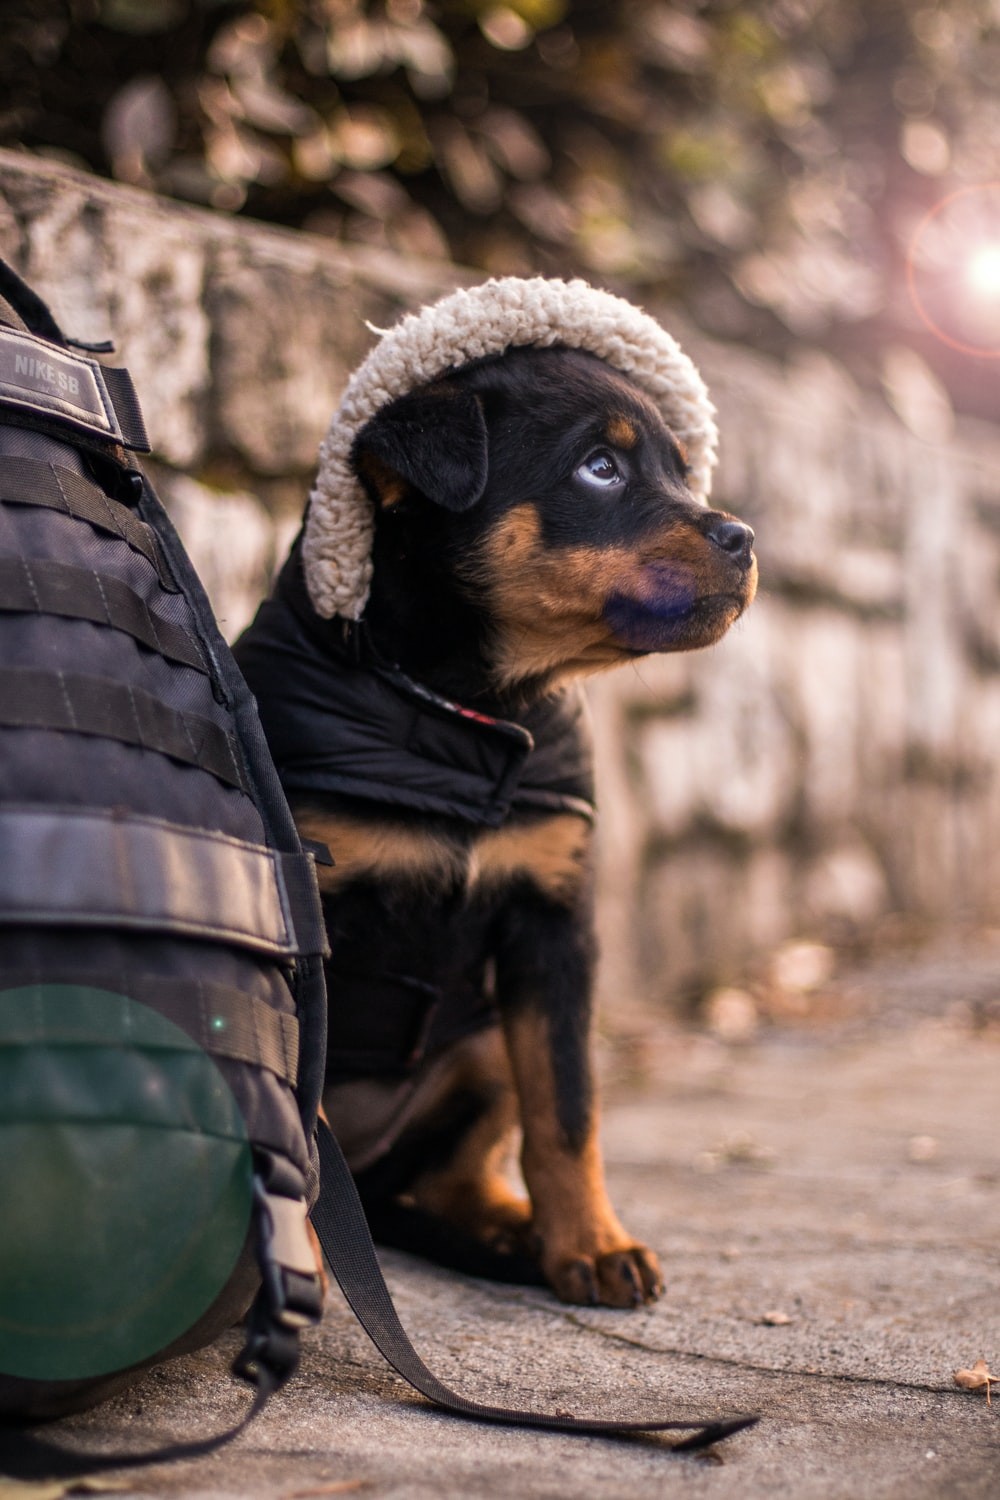 selective focus photography of black and tan Rottweiler puppy beside bag